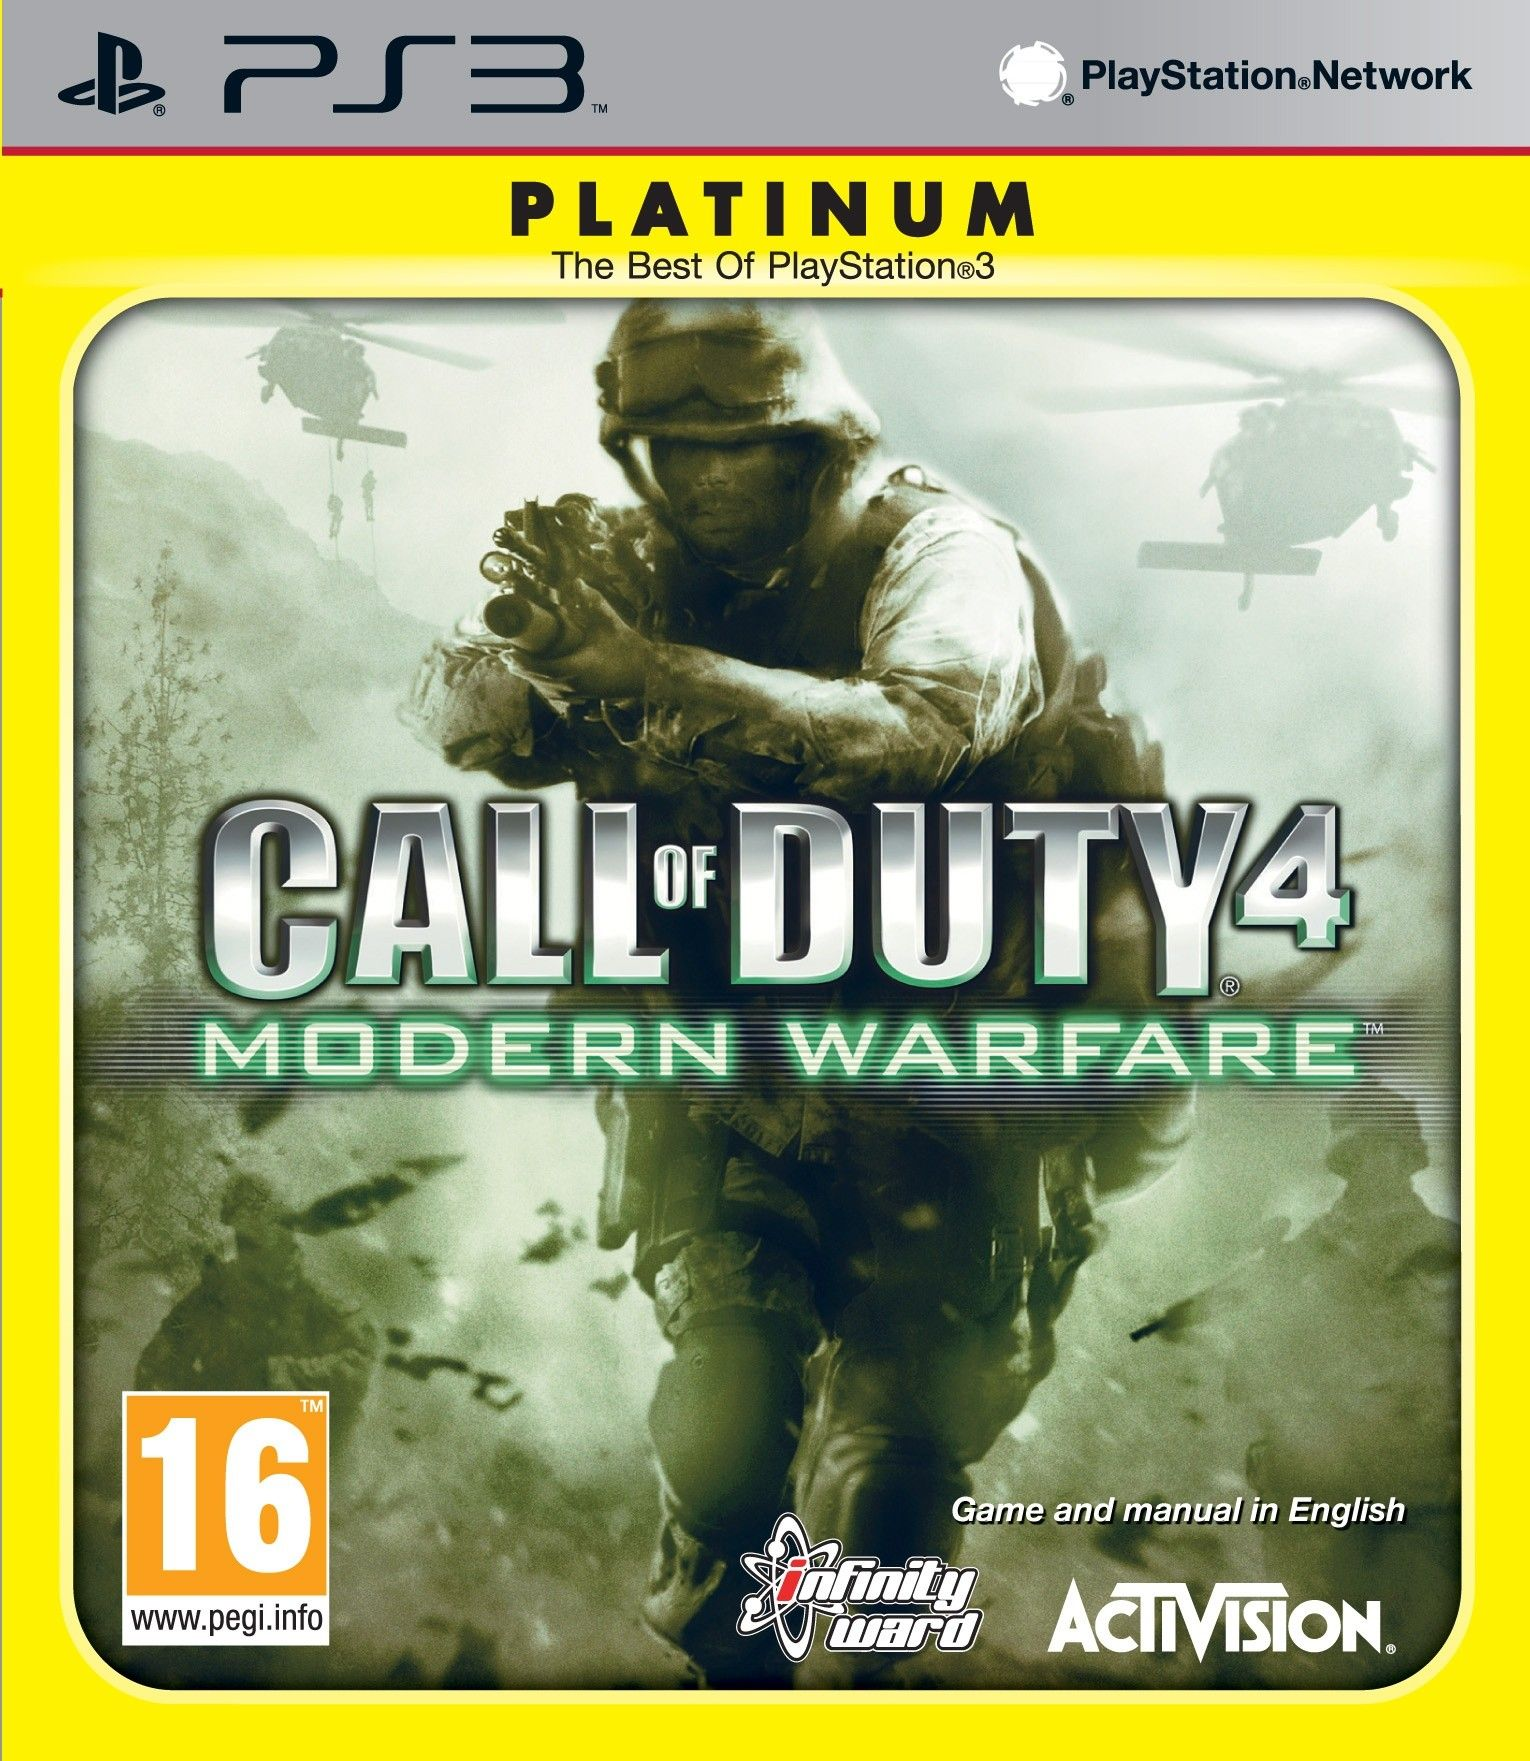 Call of Duty 4: Modern Warfare - Platinum (PS3) - 1